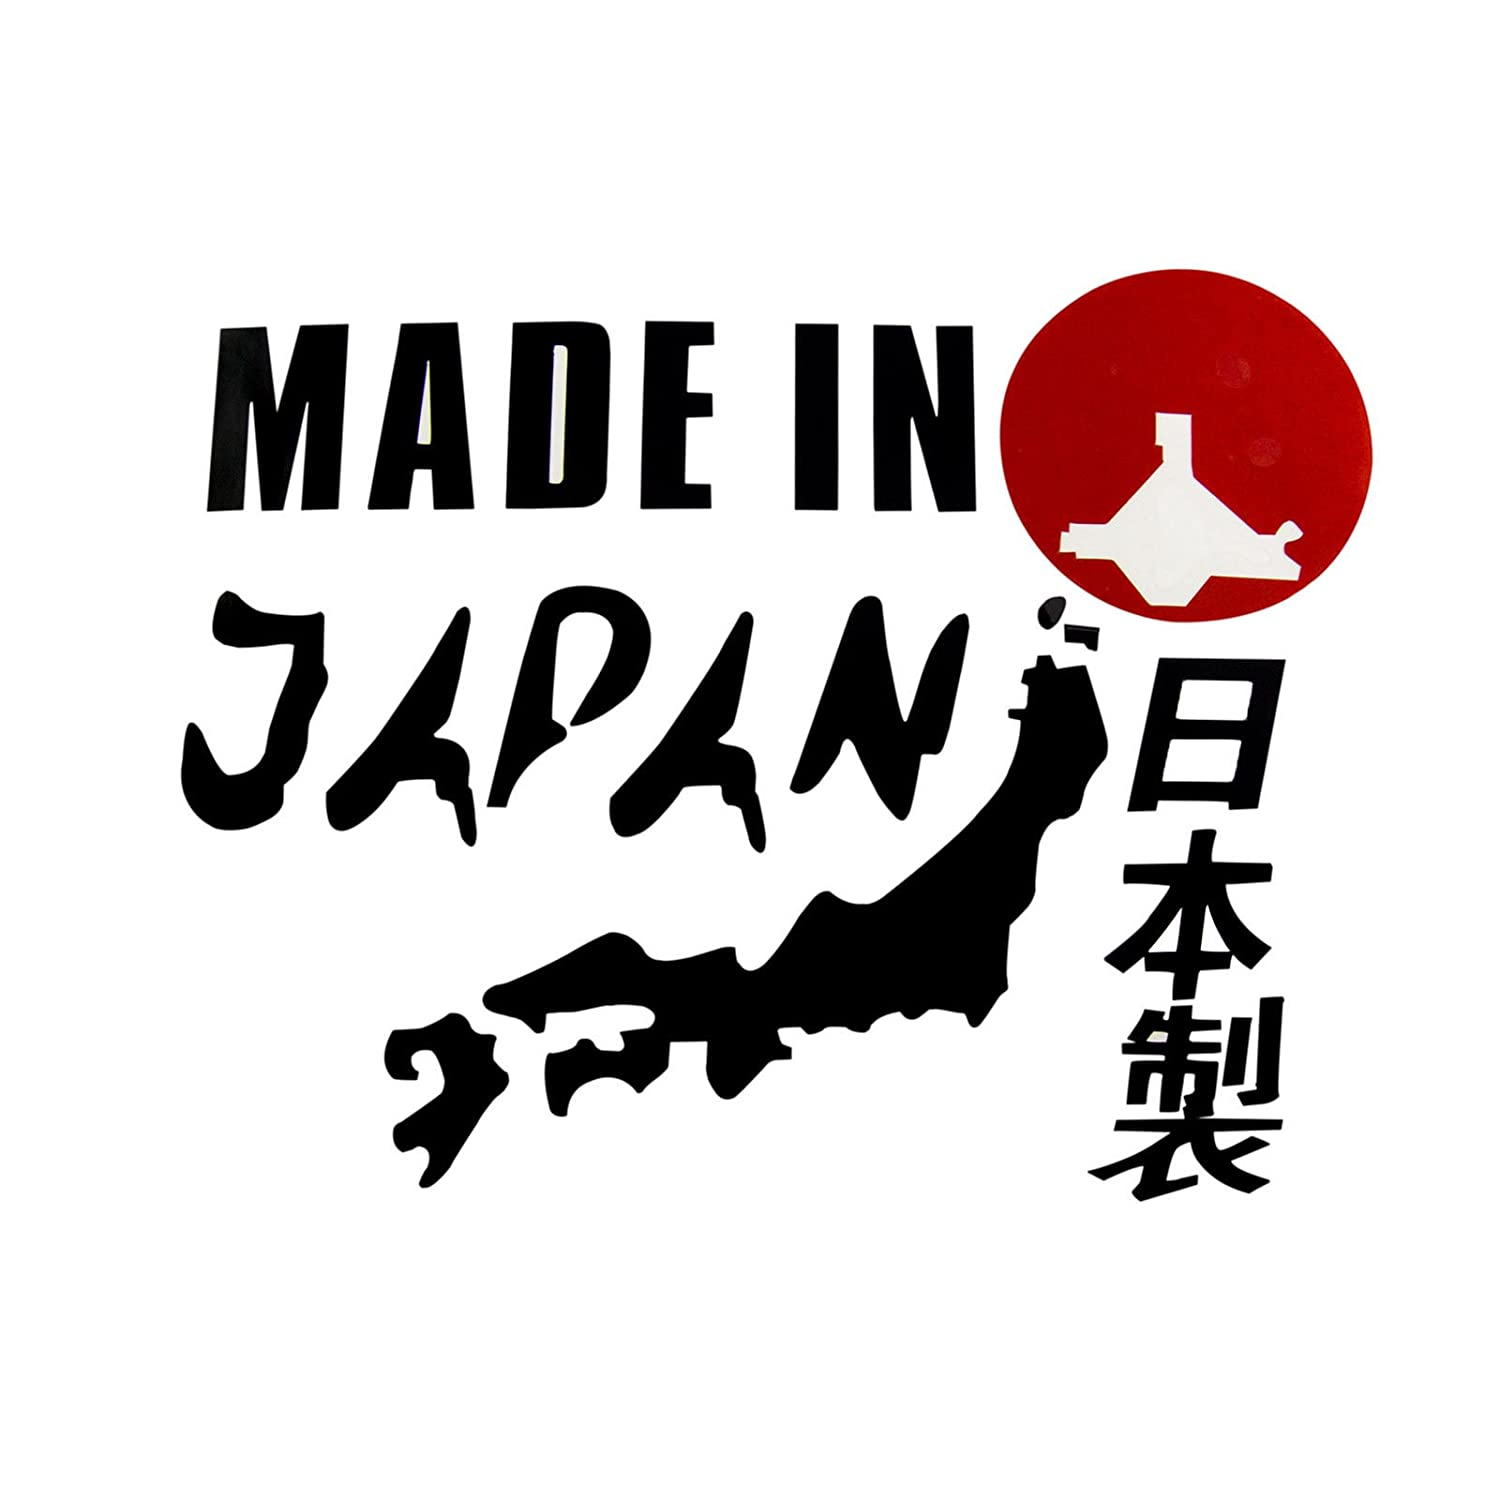 x xotic tech 1x Made in Japan Rising Sun Kanji Decal JDM Japanese Vinyl Sticker Black Nippon Map for Automotive Car Laptop Notebook 6.49/'/' x 5.11/'/' Funny Cool Decoration